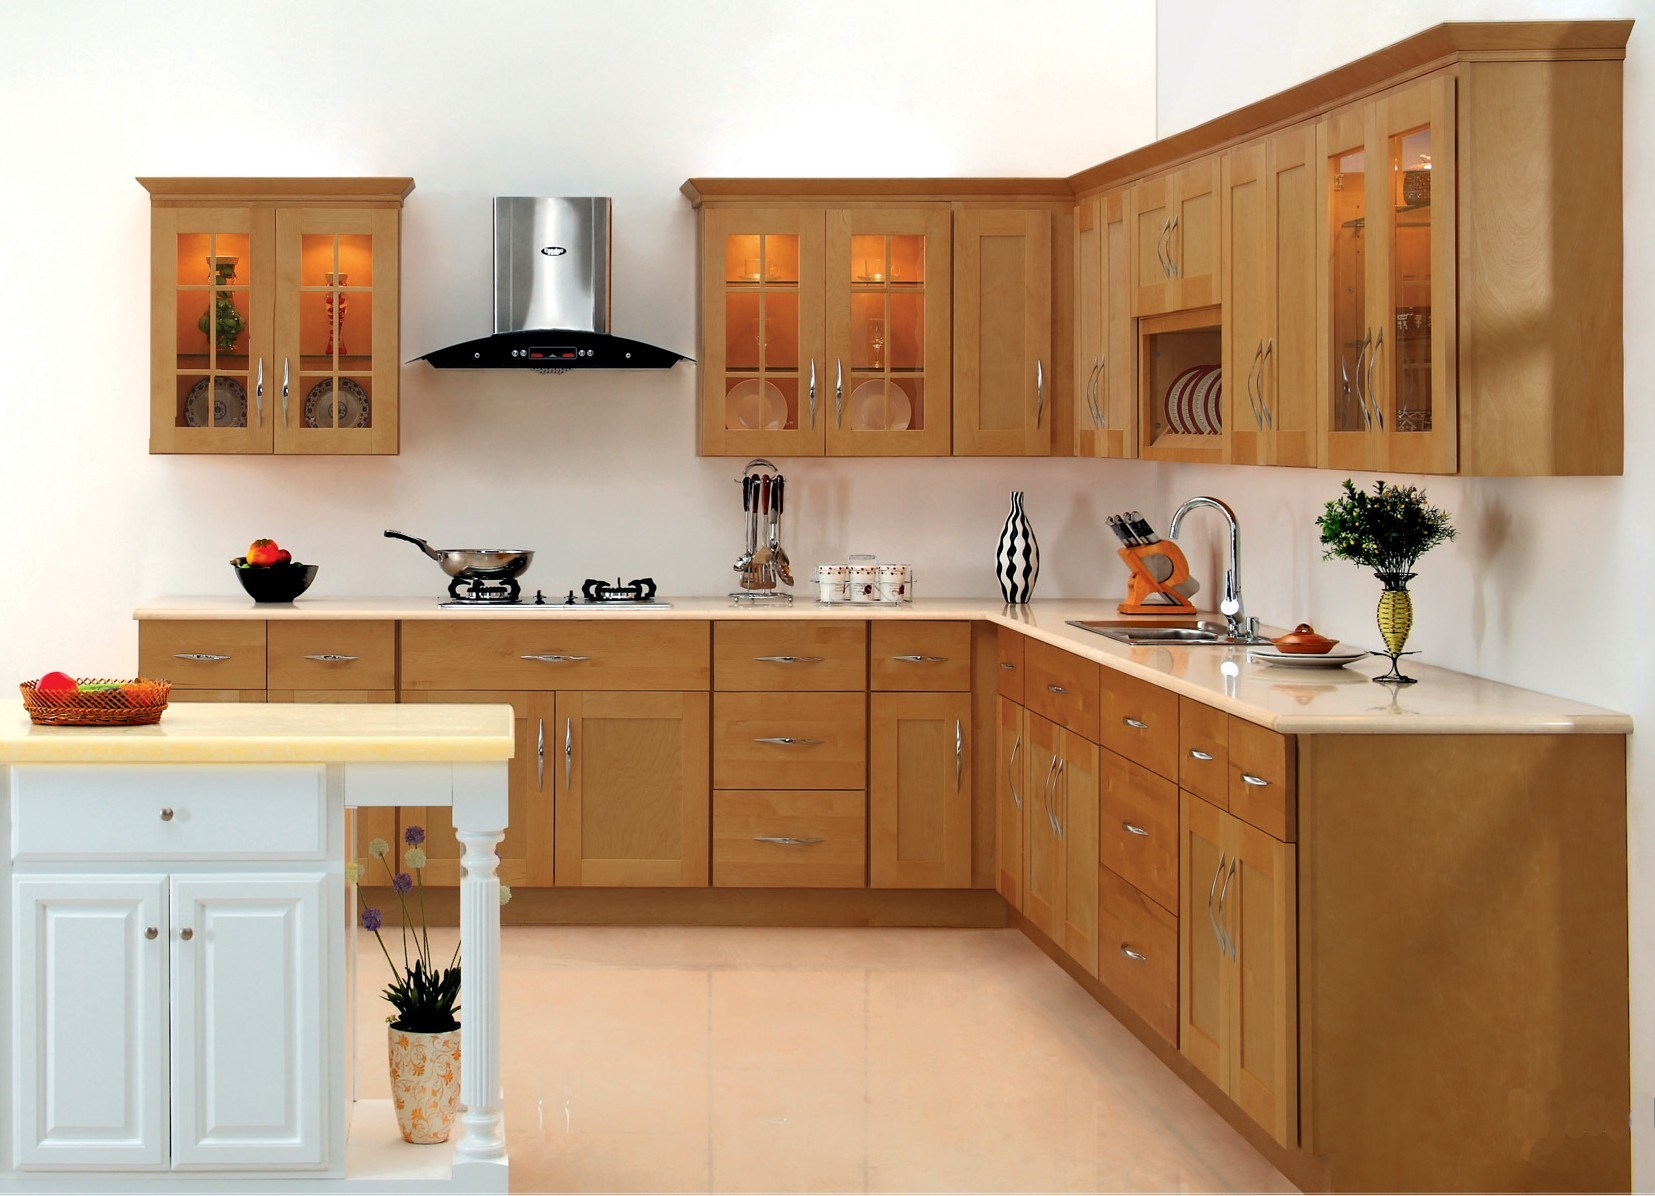 Modular kitchen furniture - Modular Kitchen